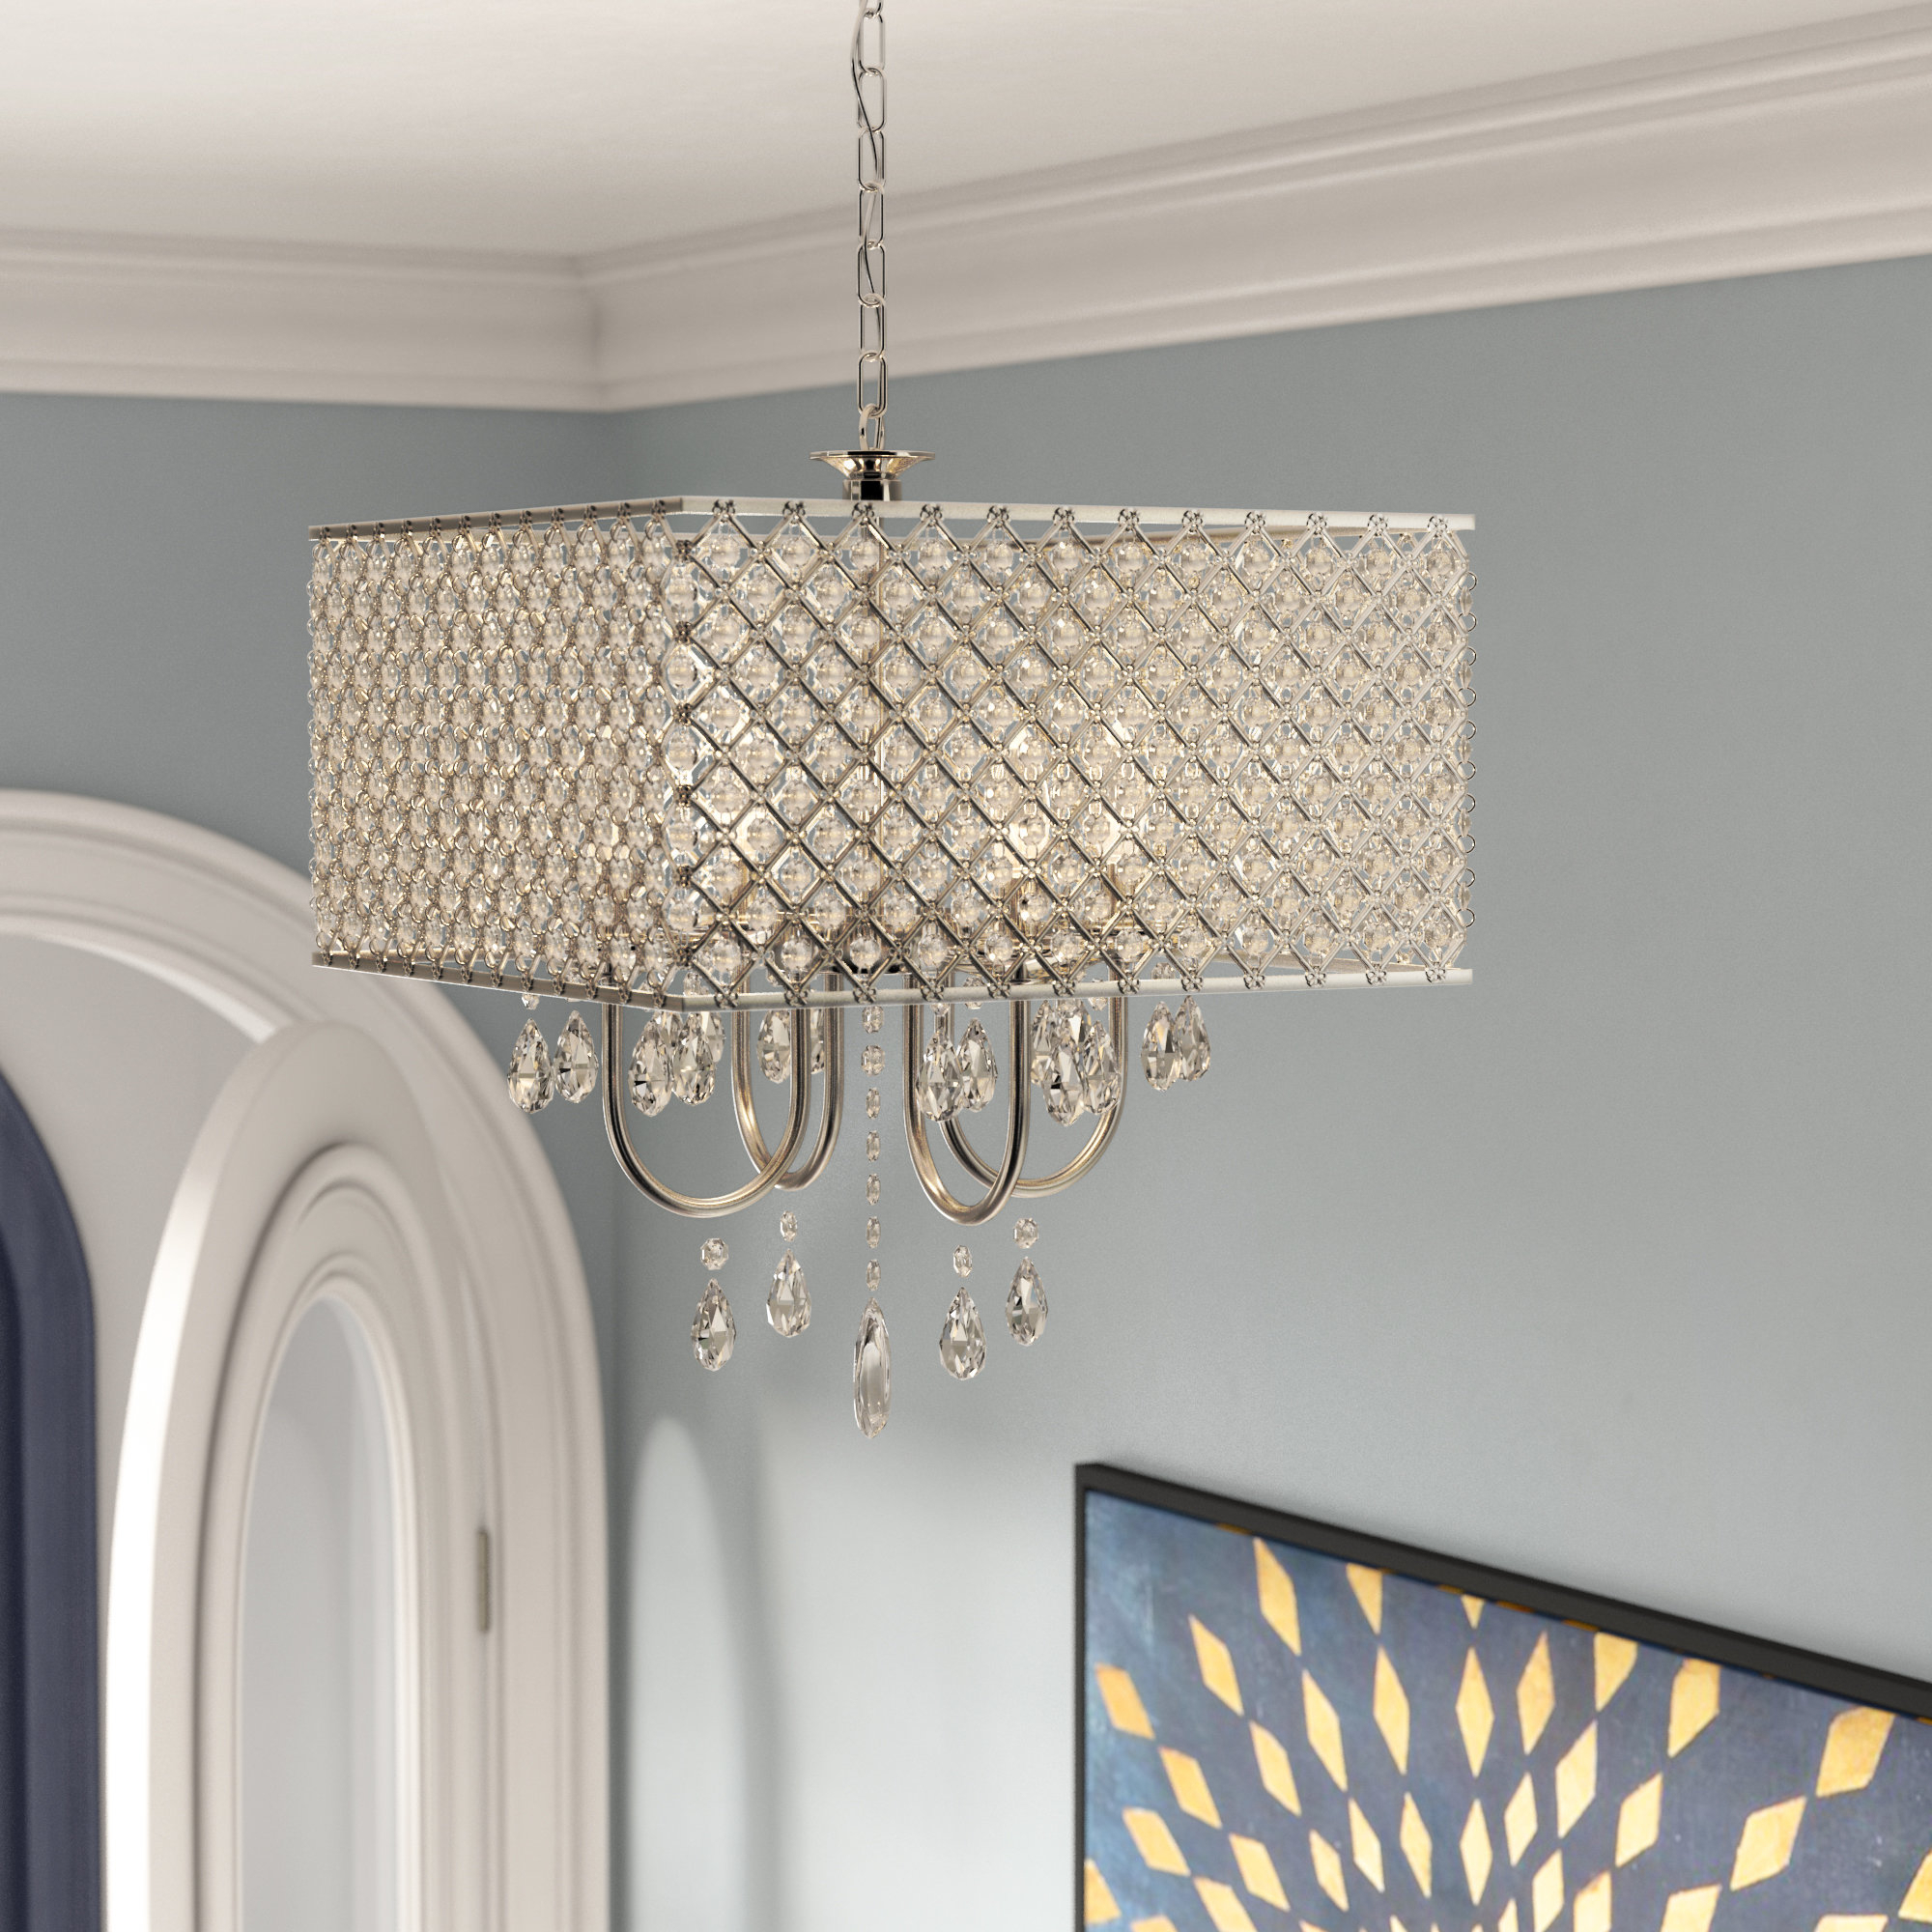 Garrin Square 4 Light Crystal Chandelier Regarding 2019 Aurore 4 Light Crystal Chandeliers (View 12 of 25)